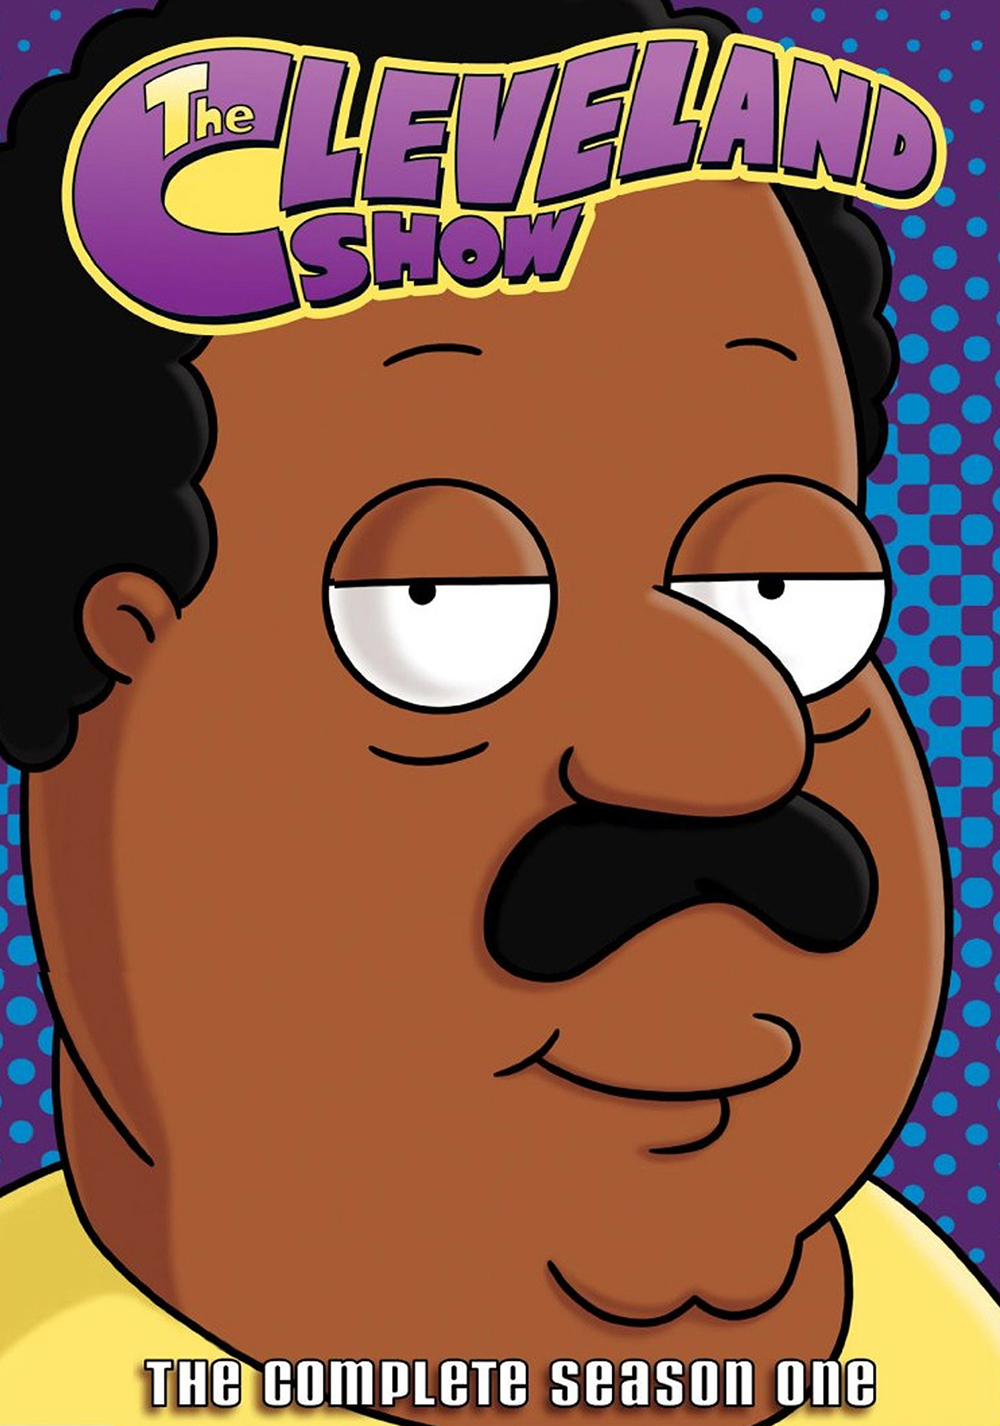 Шоу Клівленда (Сезони 1-3) / The Cleveland Show (Seasons 1-3) (2009-2012) 720p Ukr/Eng